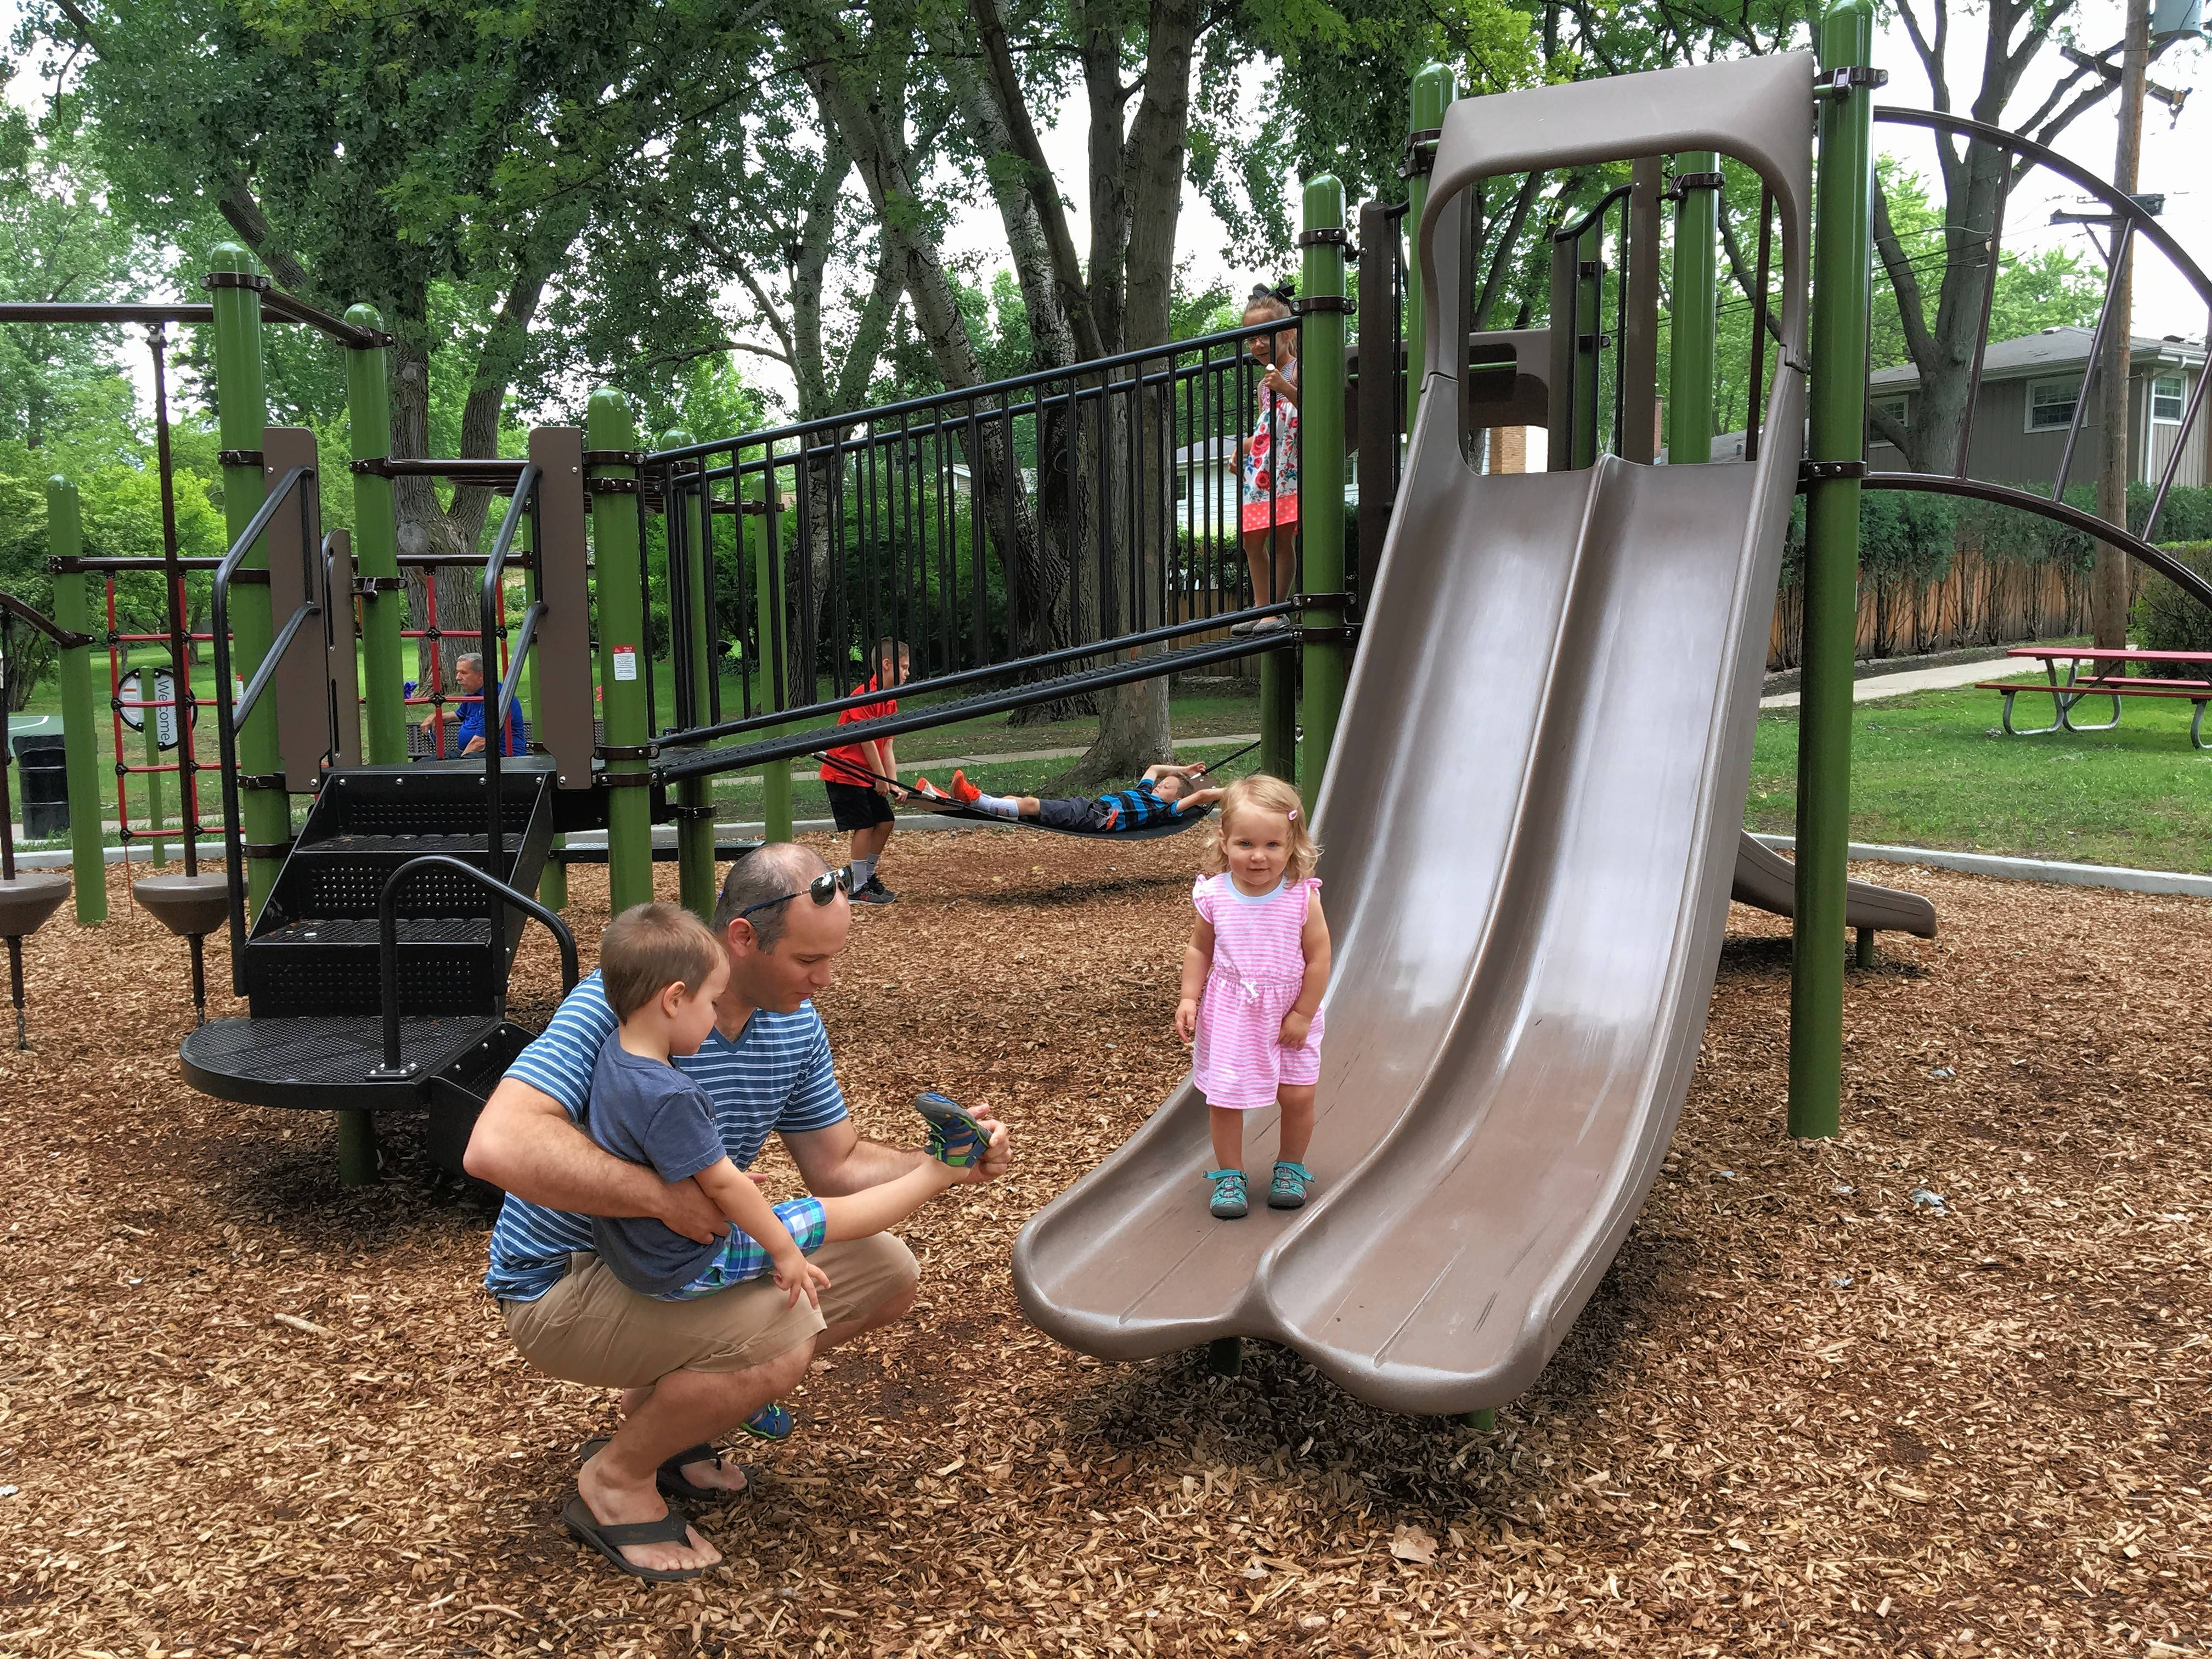 Alan Deitch helps take shoes off his son, Wesley, 3, as daughter, Elenor, 18 months, stands on a slide that is part of new playground equipment at We-Go Park Play Lot in Mount Prospect.